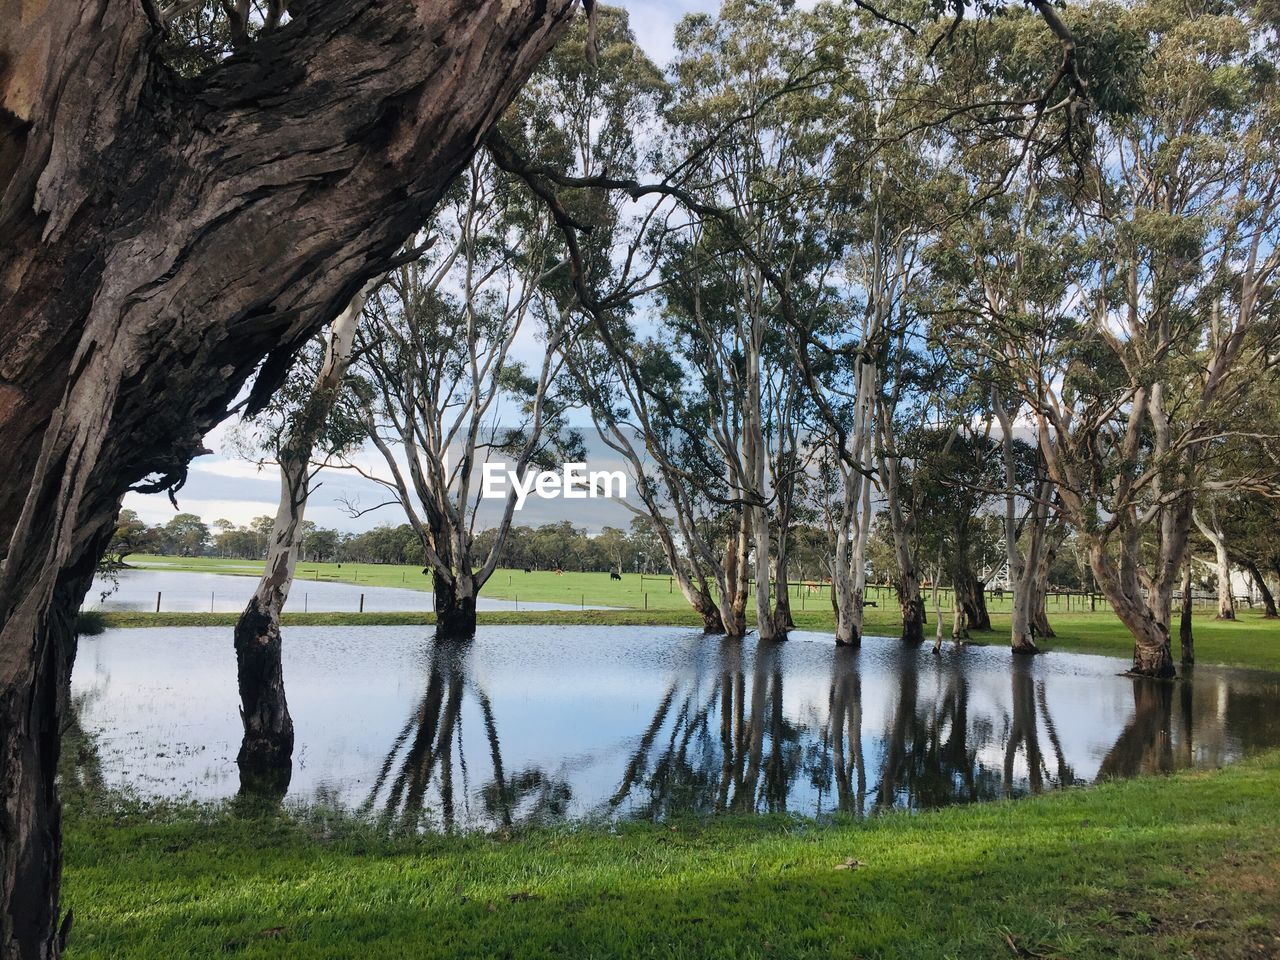 tree, plant, water, lake, tranquility, grass, nature, tranquil scene, scenics - nature, beauty in nature, day, reflection, trunk, tree trunk, growth, land, sky, no people, outdoors